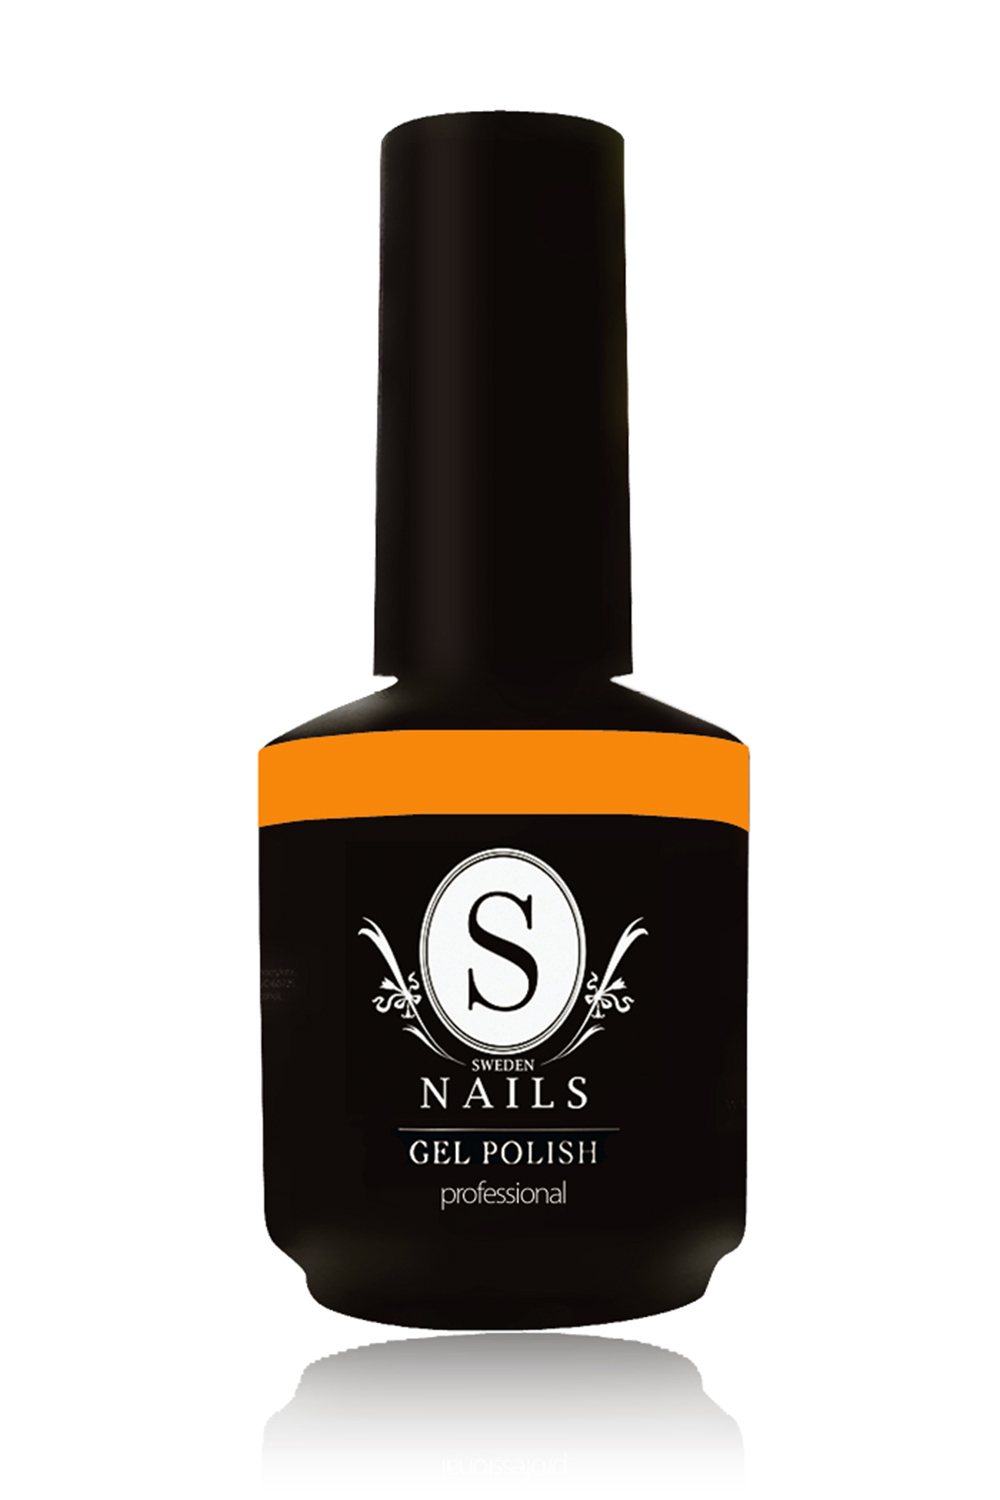 Foto Gelpolish Sweden Nails 063